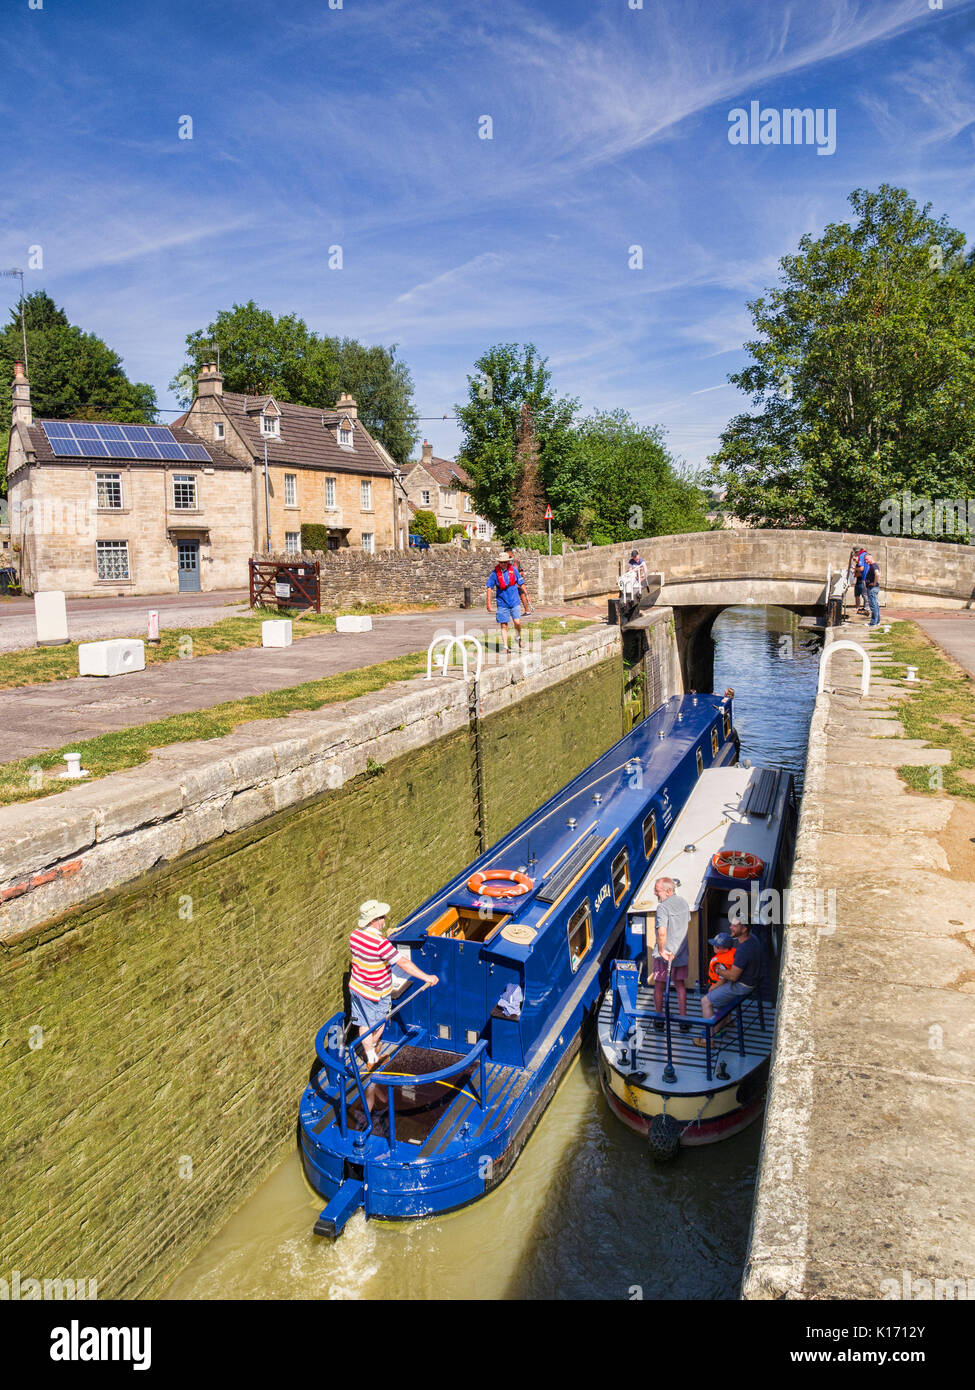 7 Jully 2017: Bradford on Avon, Somerset, England, UK - Two narrowboats passing through a lock on the Kennet and Avon Canal. - Stock Image